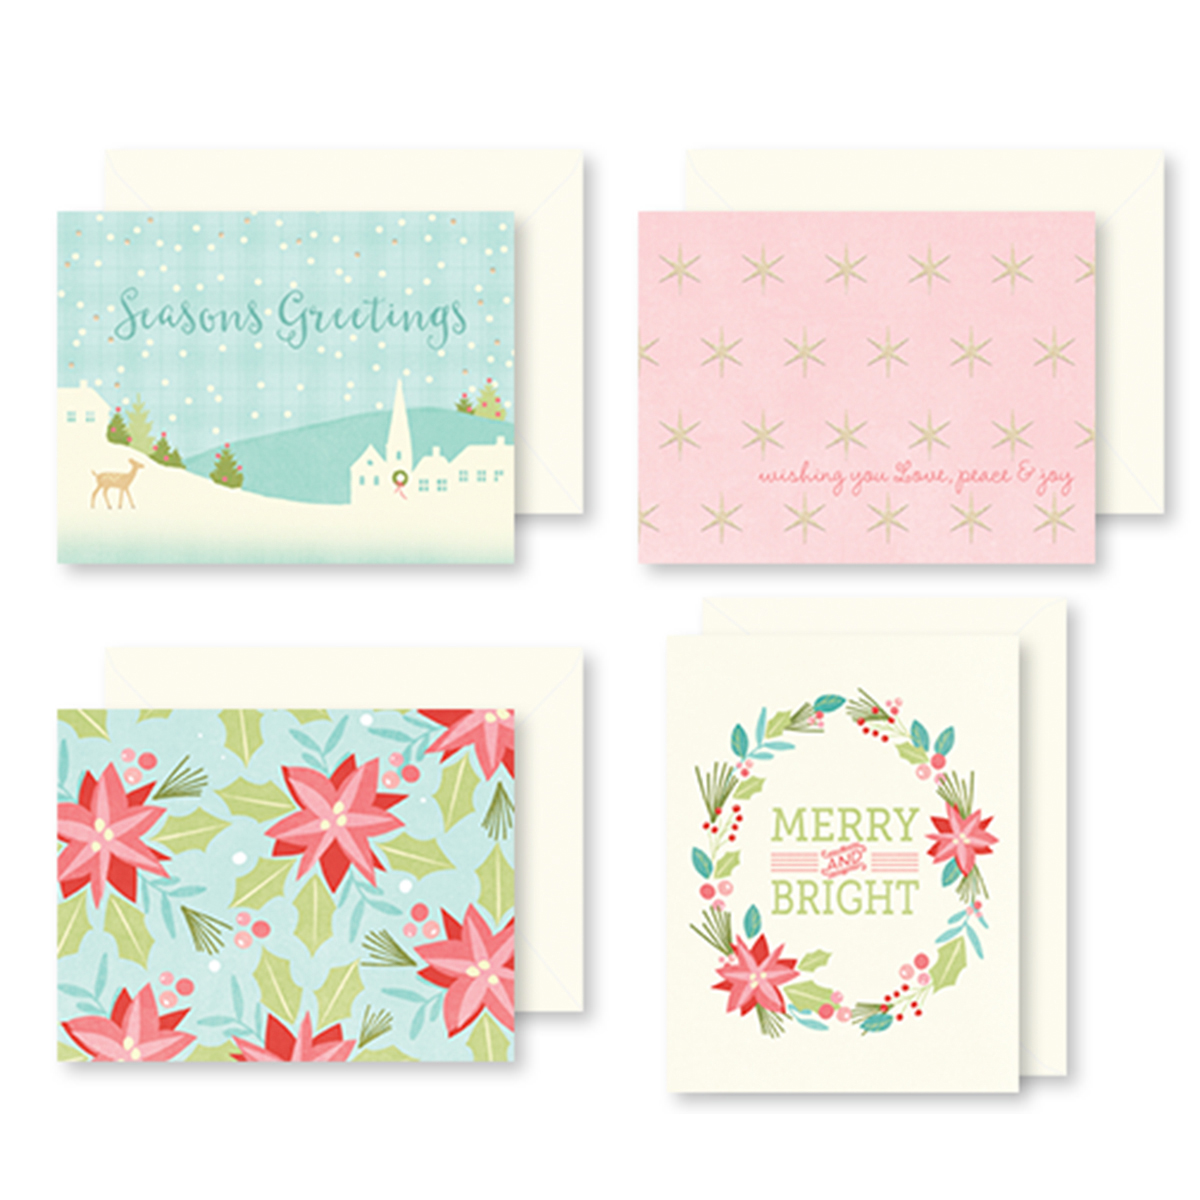 Sugar Plum Christmas Cards W/Envelopes 12/Pkg-4 Designs/3 Each